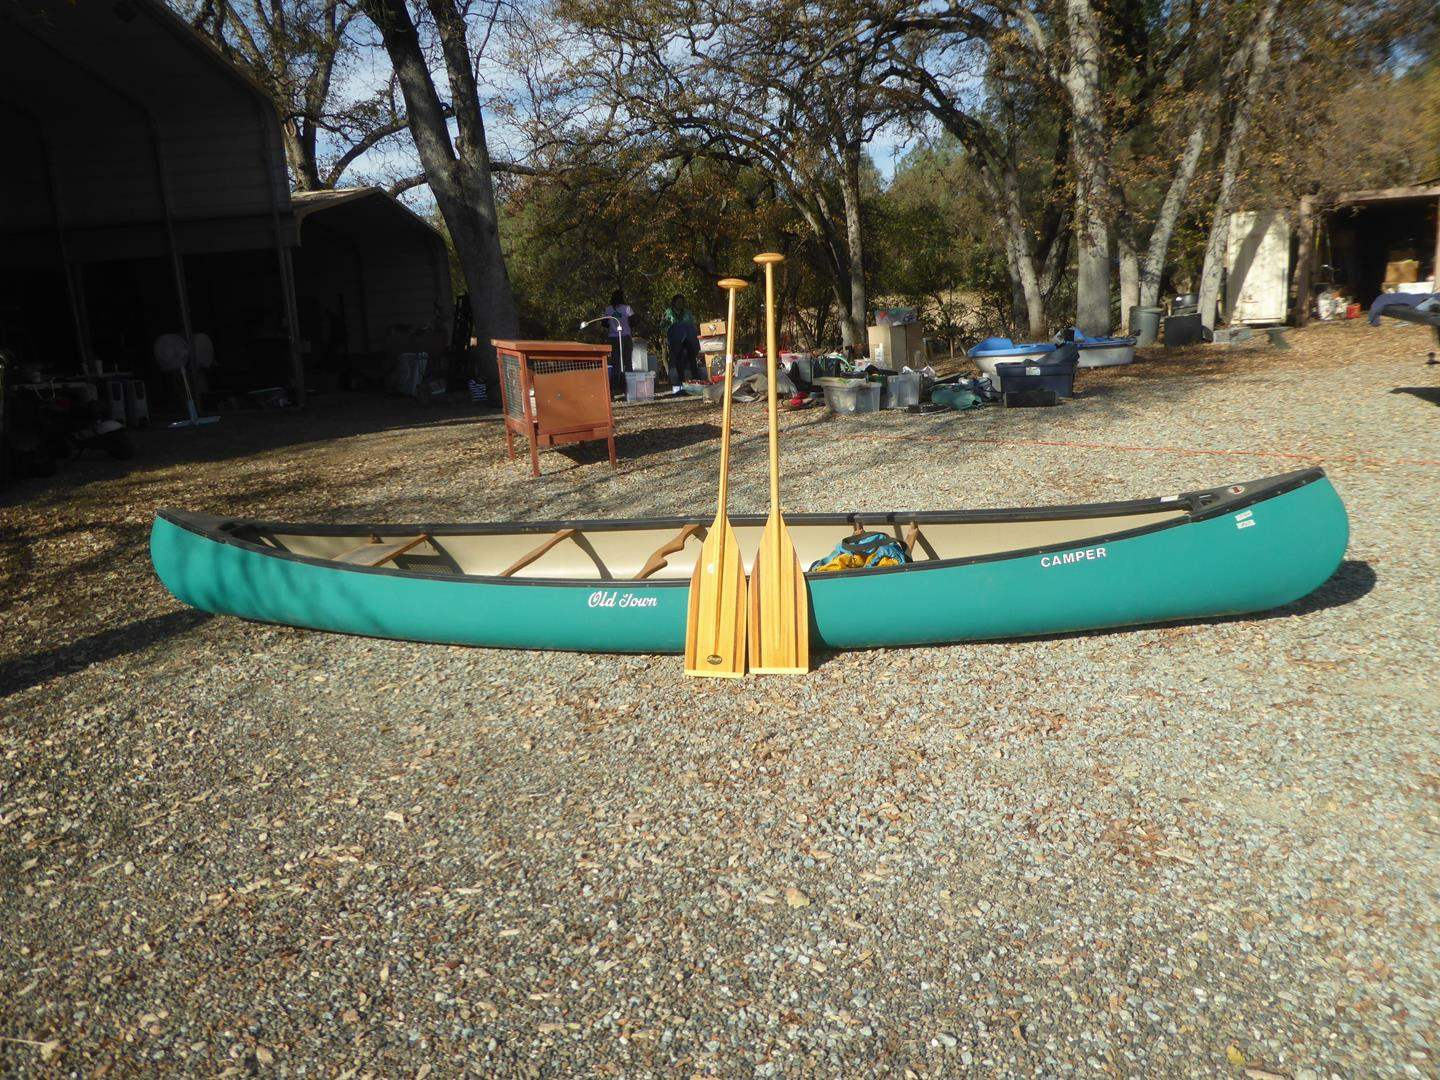 """Lot # 69 - Old Town Canoe 15'4"""" Long & Two Paddles (main image)"""